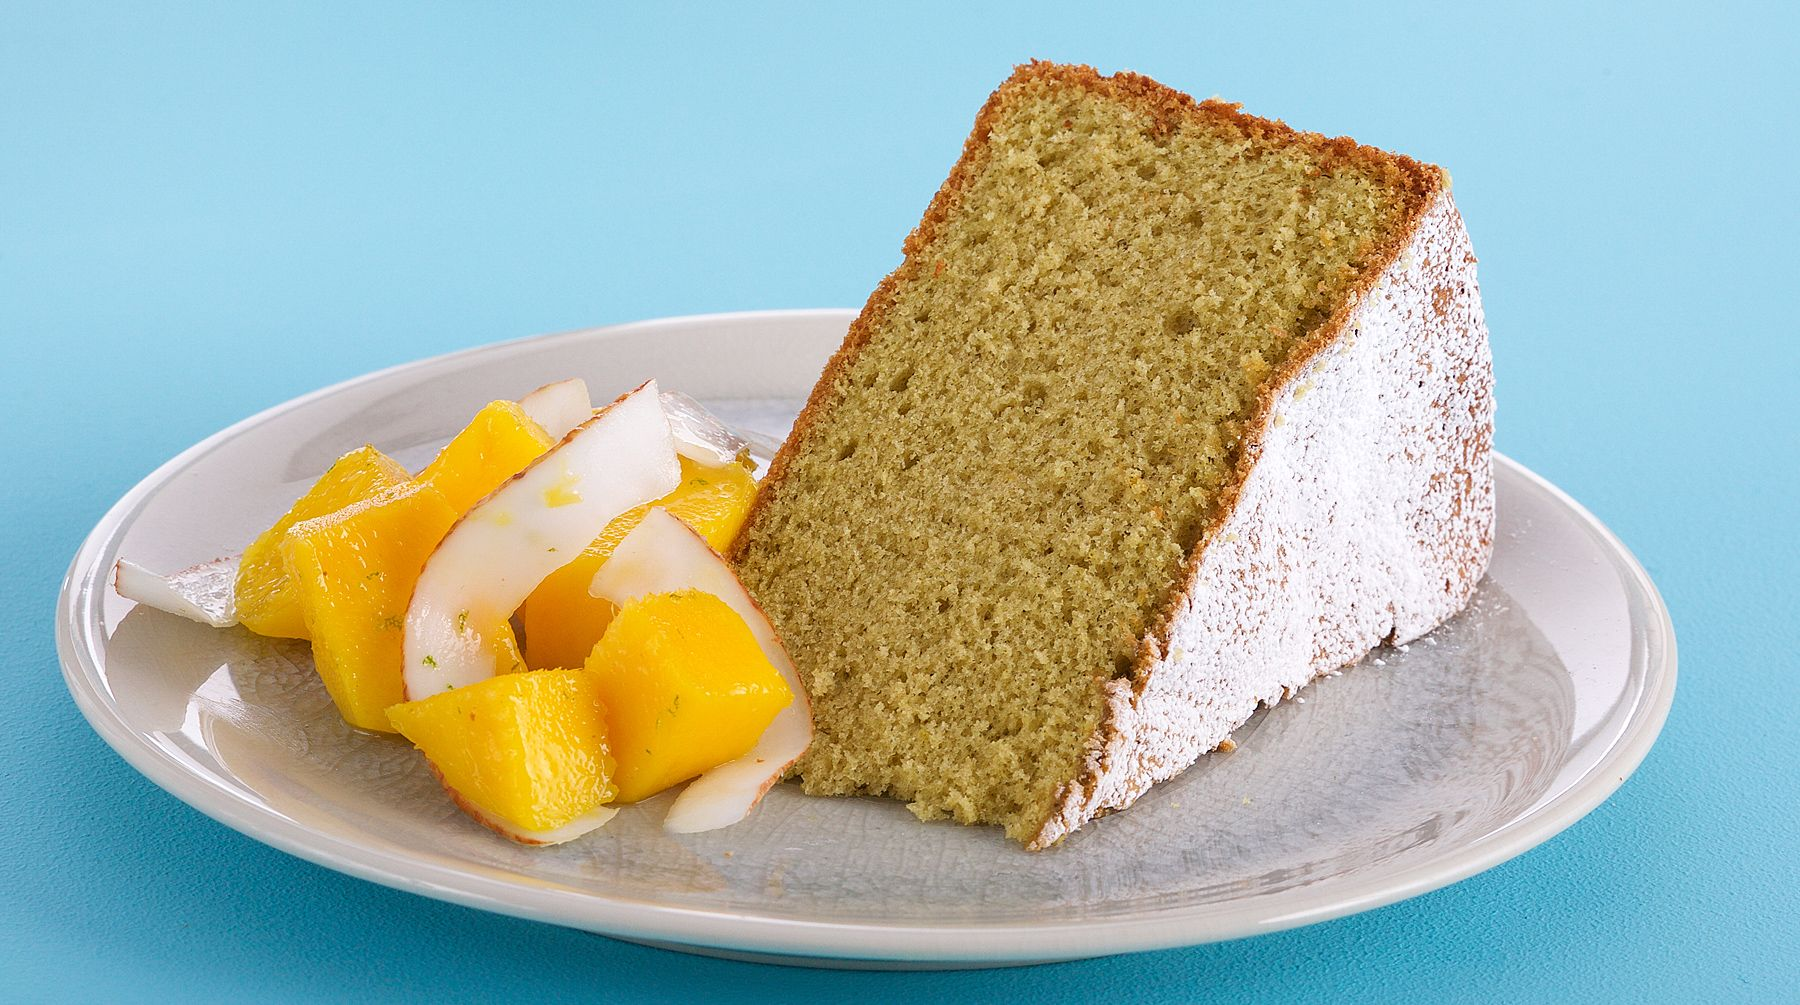 Whether its a savory tart or a creamy cheesecake anna olson is the try this green tea genoise sponge cake recipe by chef anna olson this recipe is from the show bake with anna forumfinder Gallery